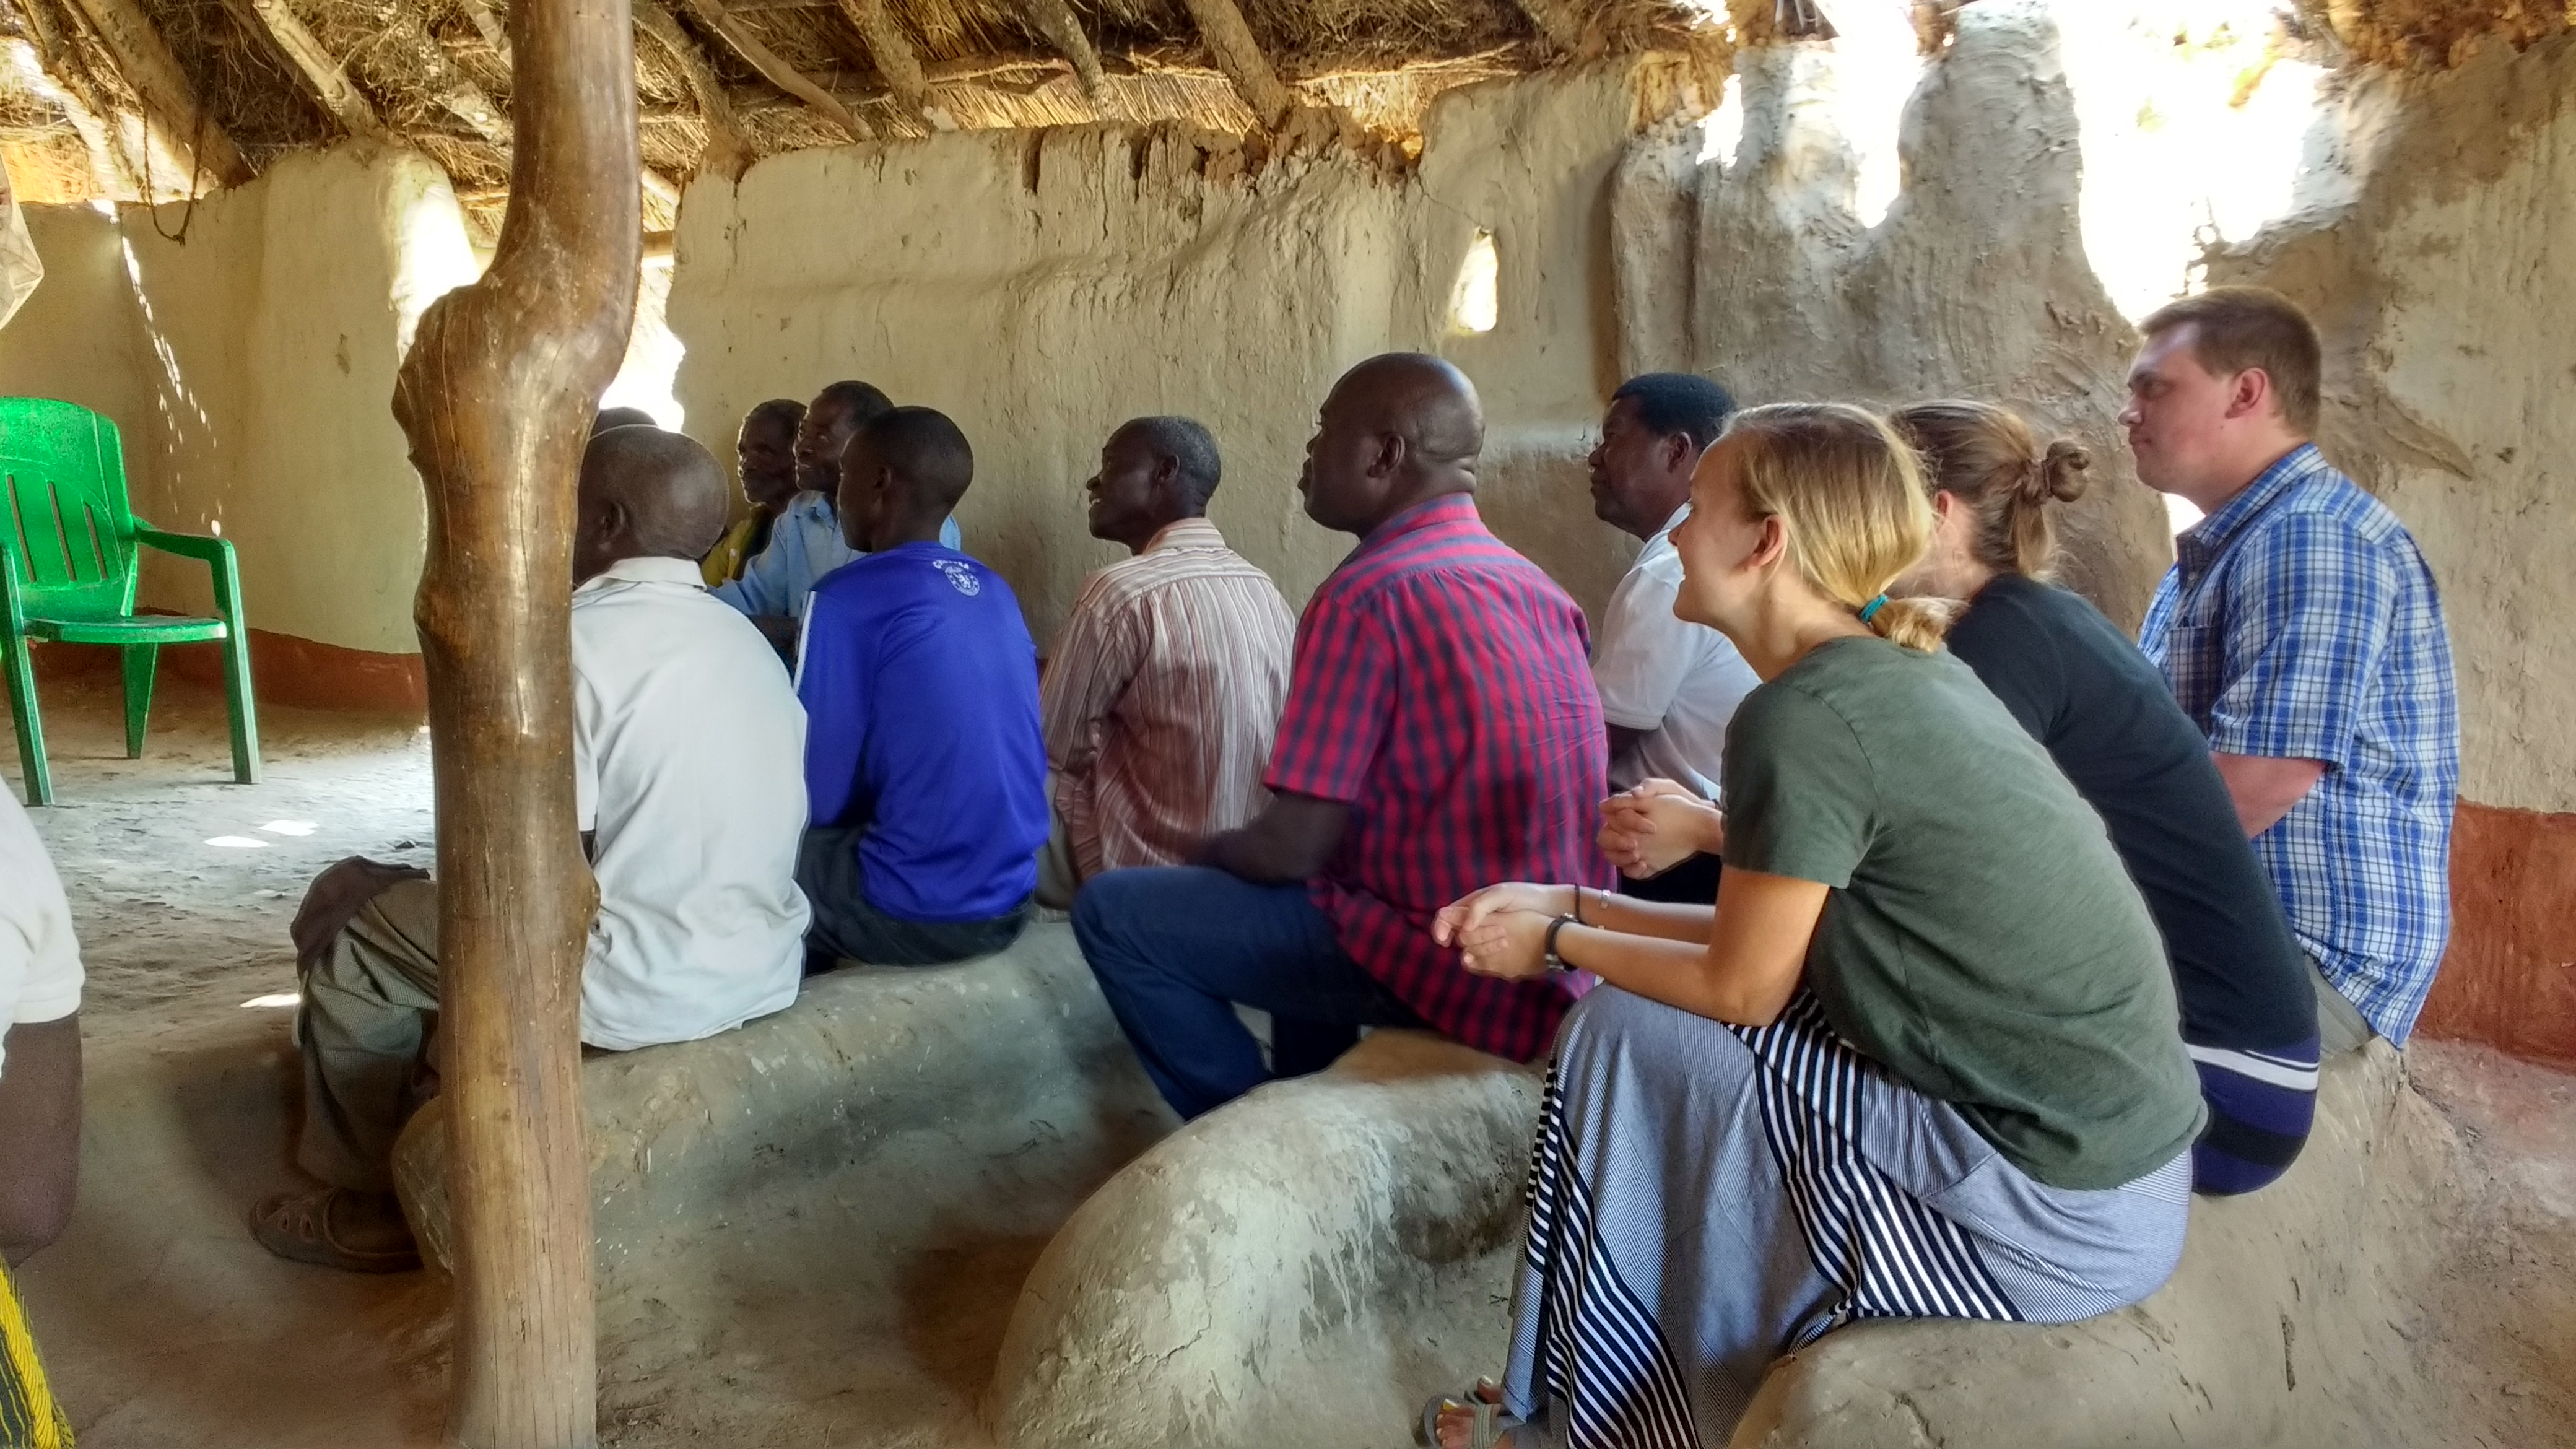 Presbyterian church, village style: The Zambia YAVs at a small village prayer house during their in-country orientation